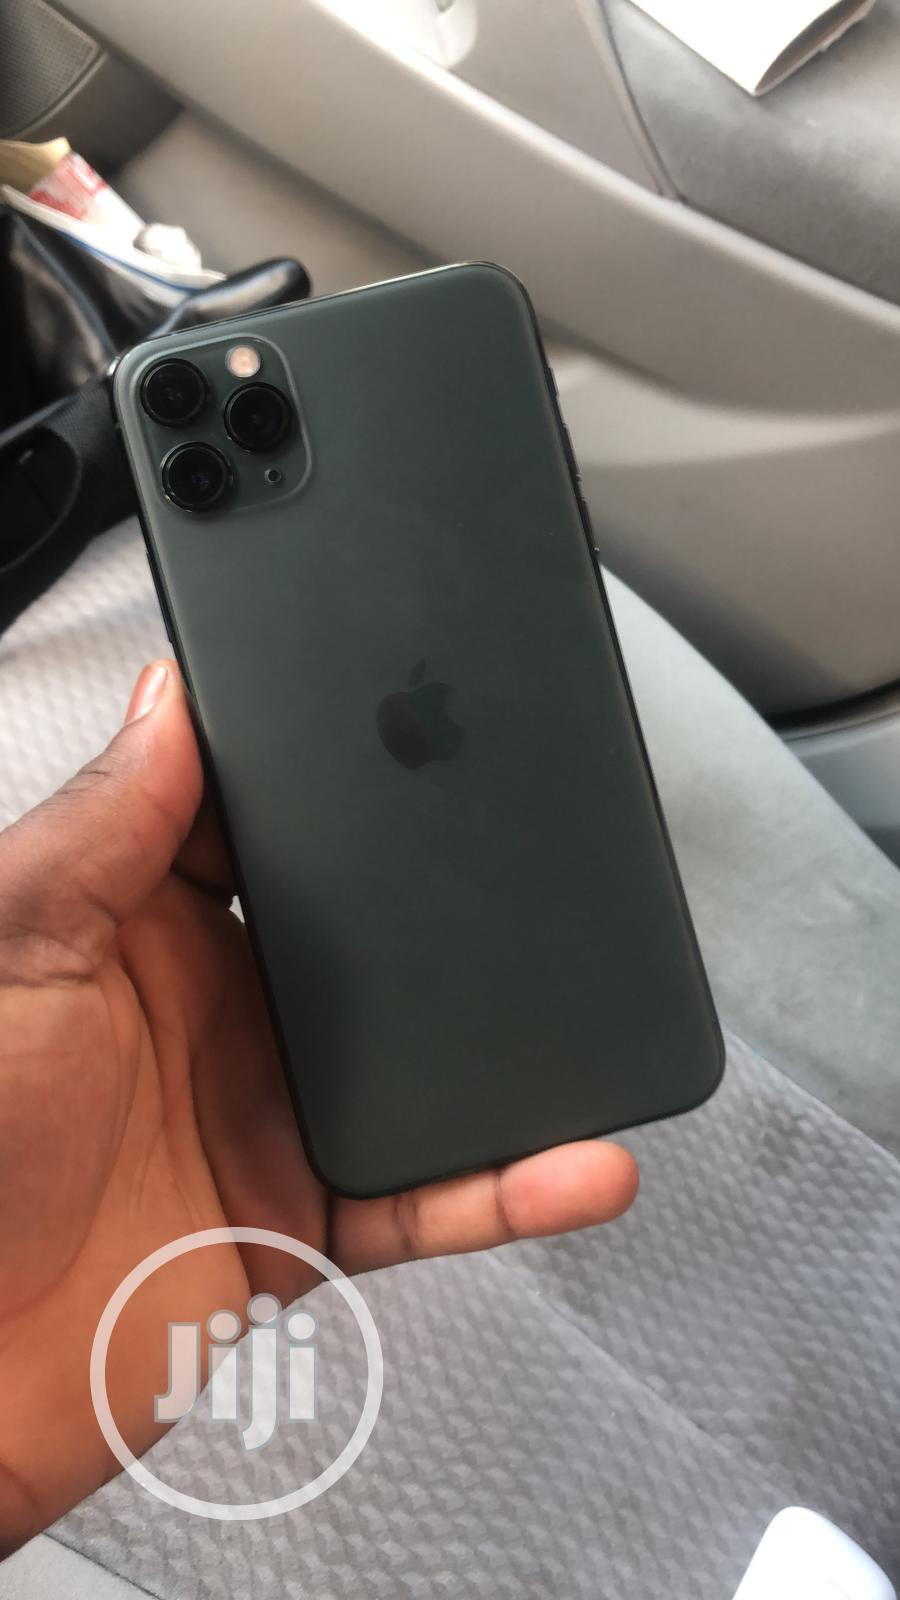 Apple iPhone 11 Pro Max 64 GB Green | Mobile Phones for sale in Mushin, Lagos State, Nigeria